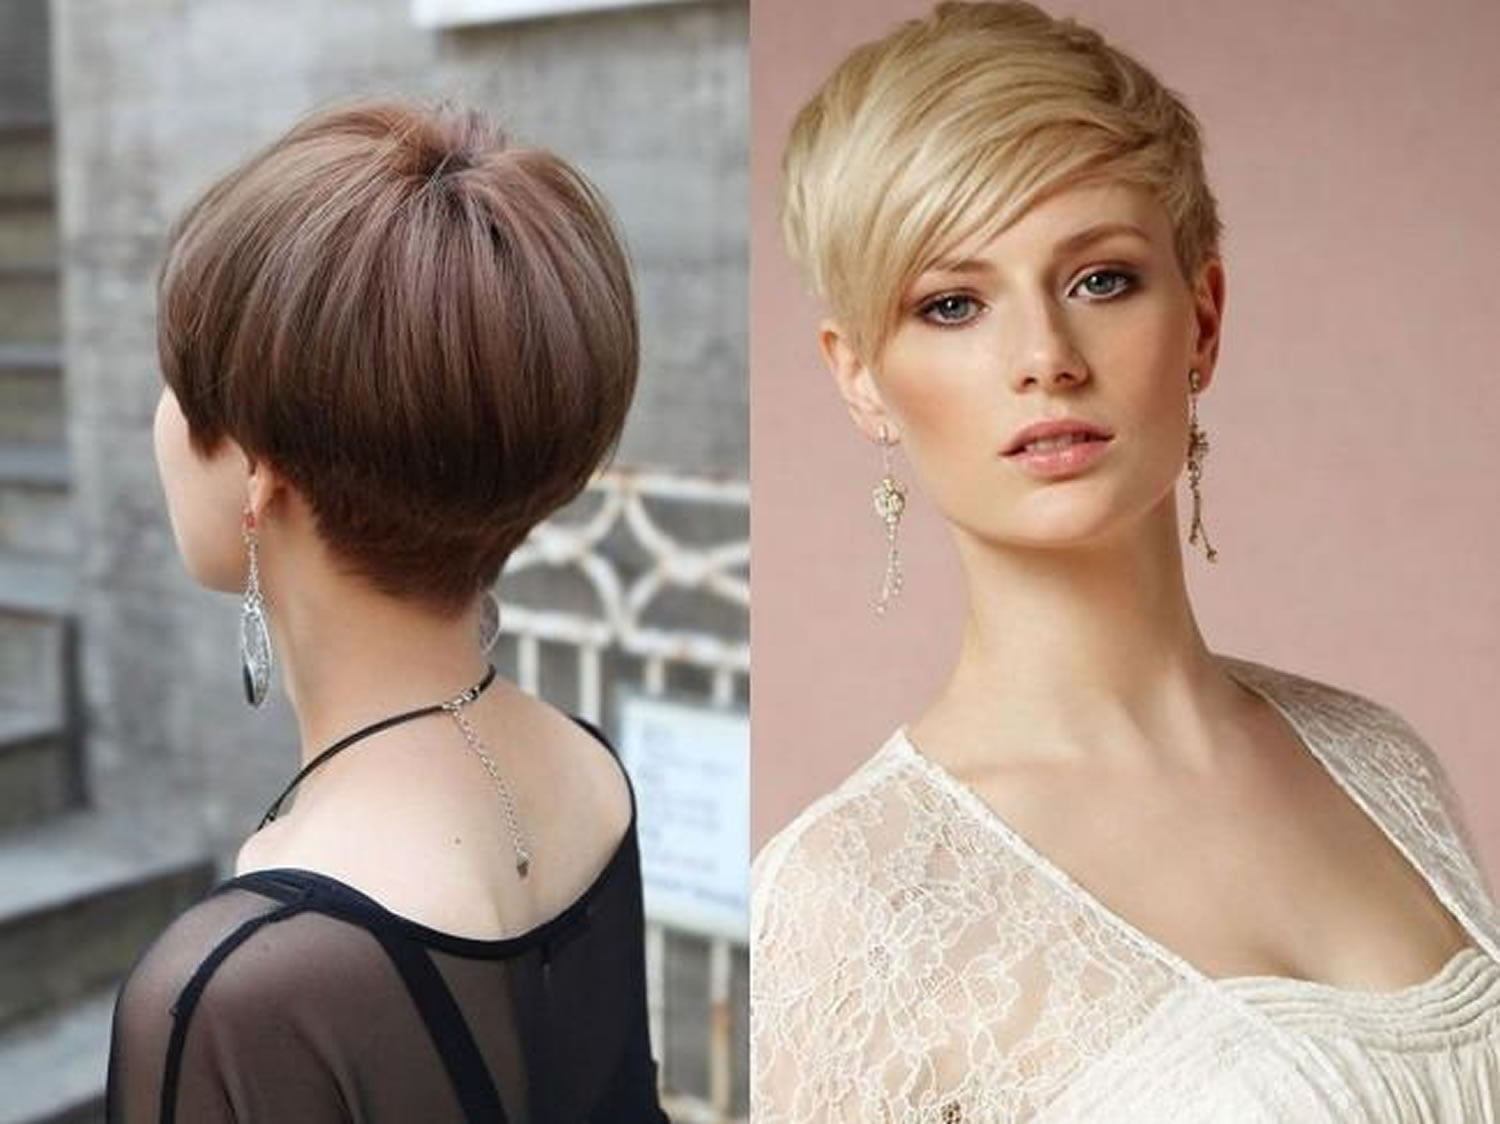 2019 Hairstyles And Colors: Short Haircuts And Hair Color Ideas For Women For Spring